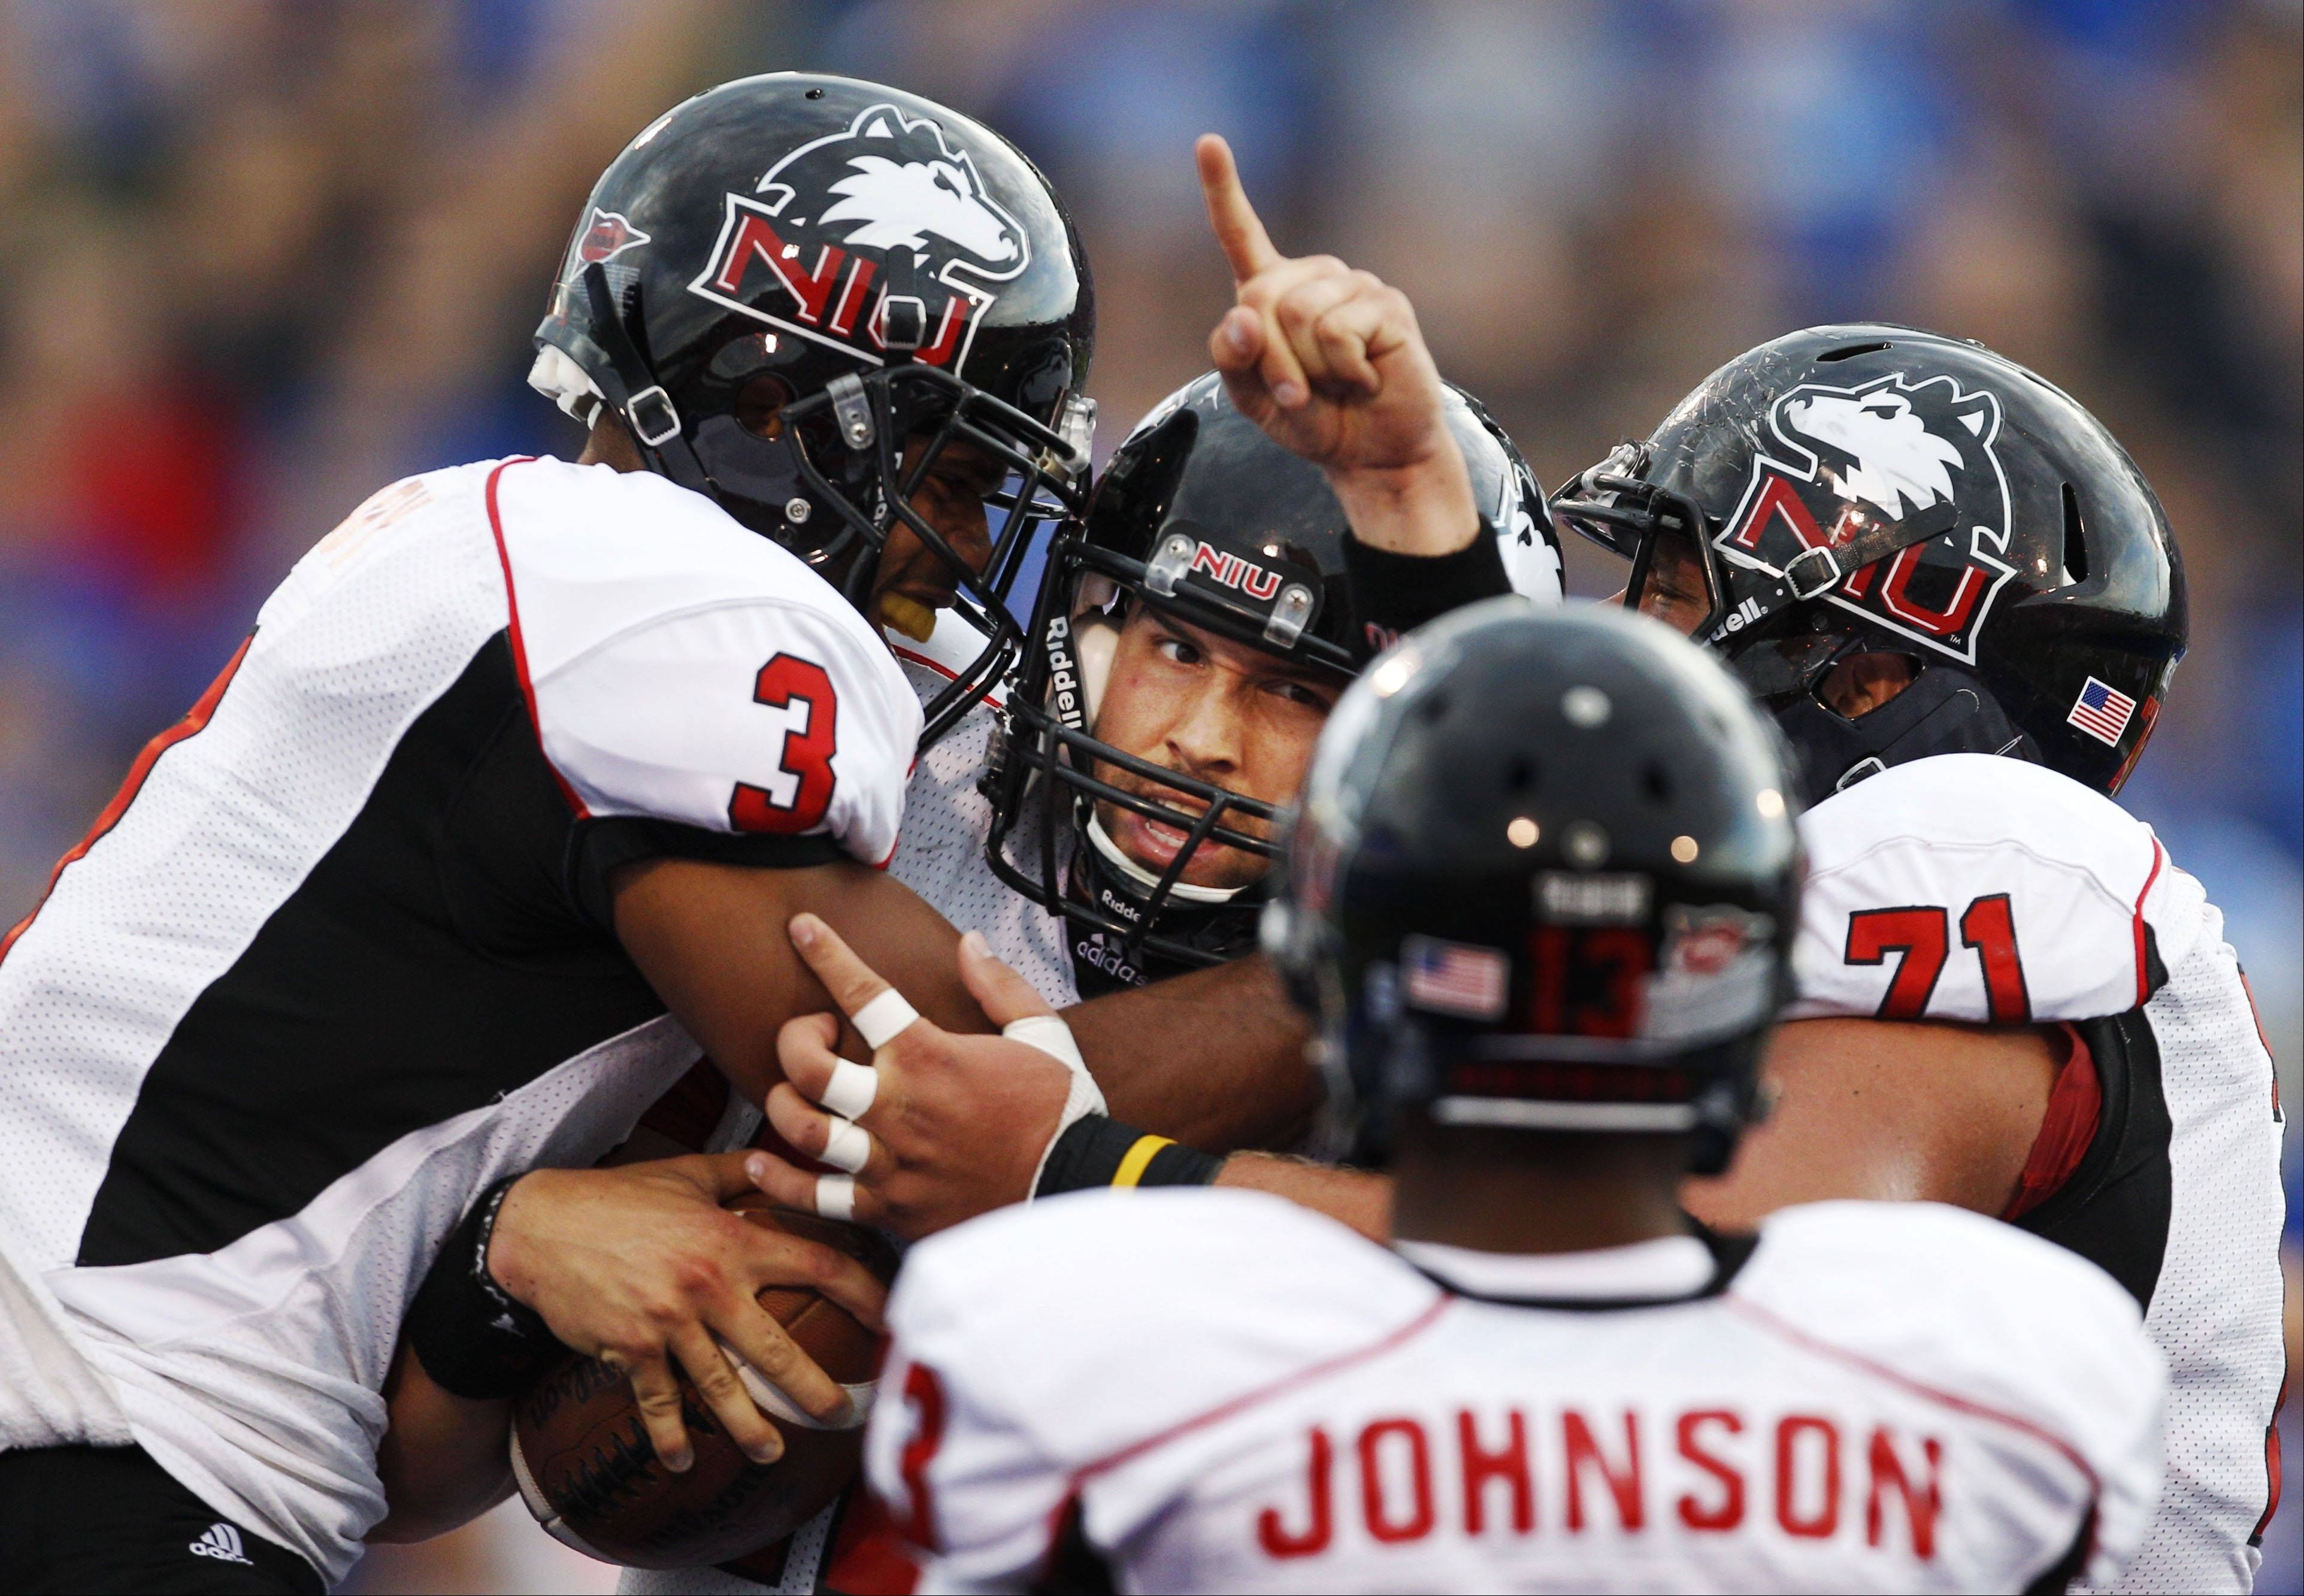 Northern Illinois quarterback Chandler Harnish, middle, celebrates with teammates after a touchdown against Kansas.